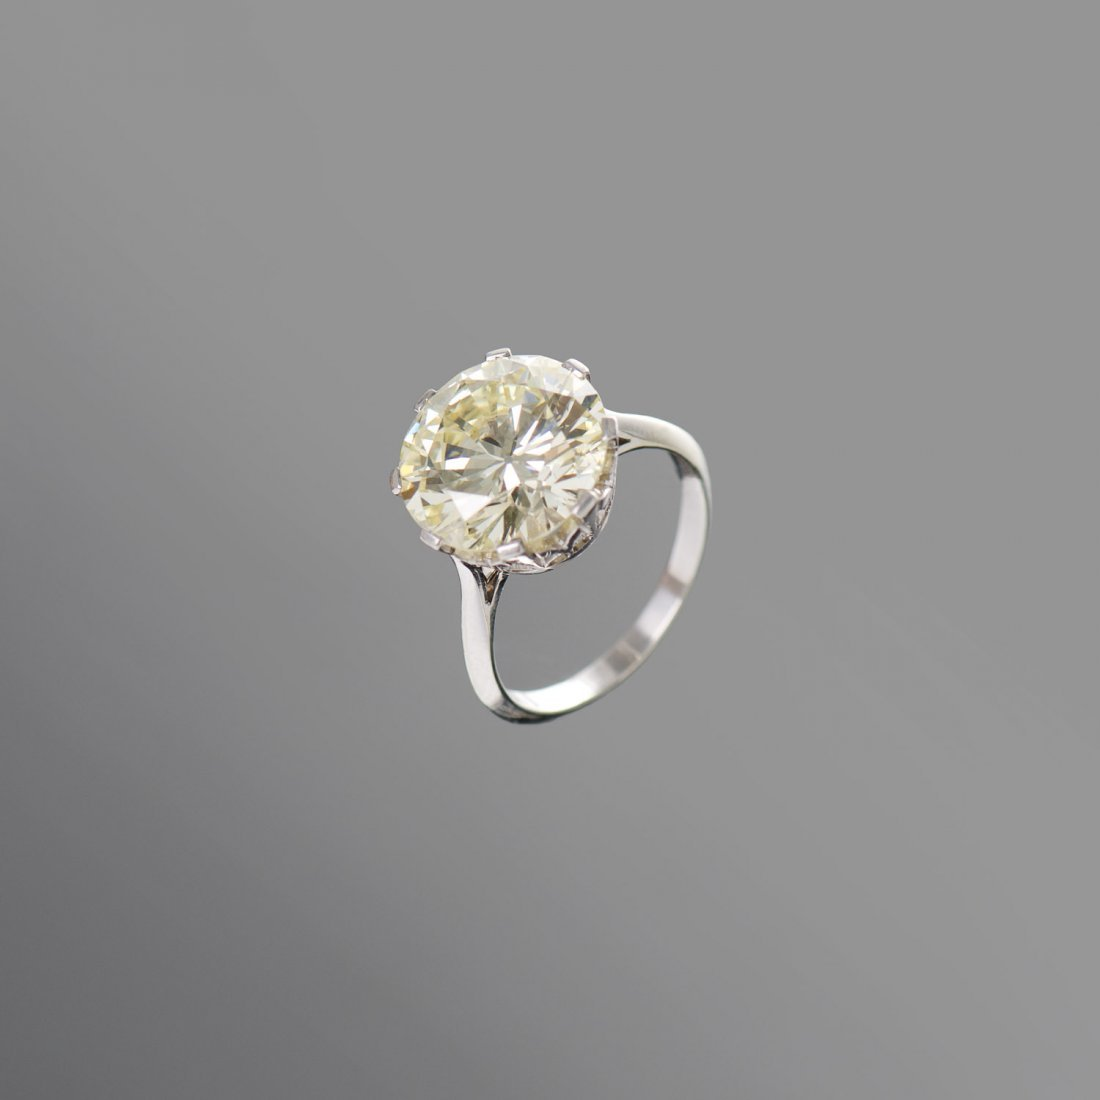 A 6.81 carat solitaire diamond ring Eight claw set with